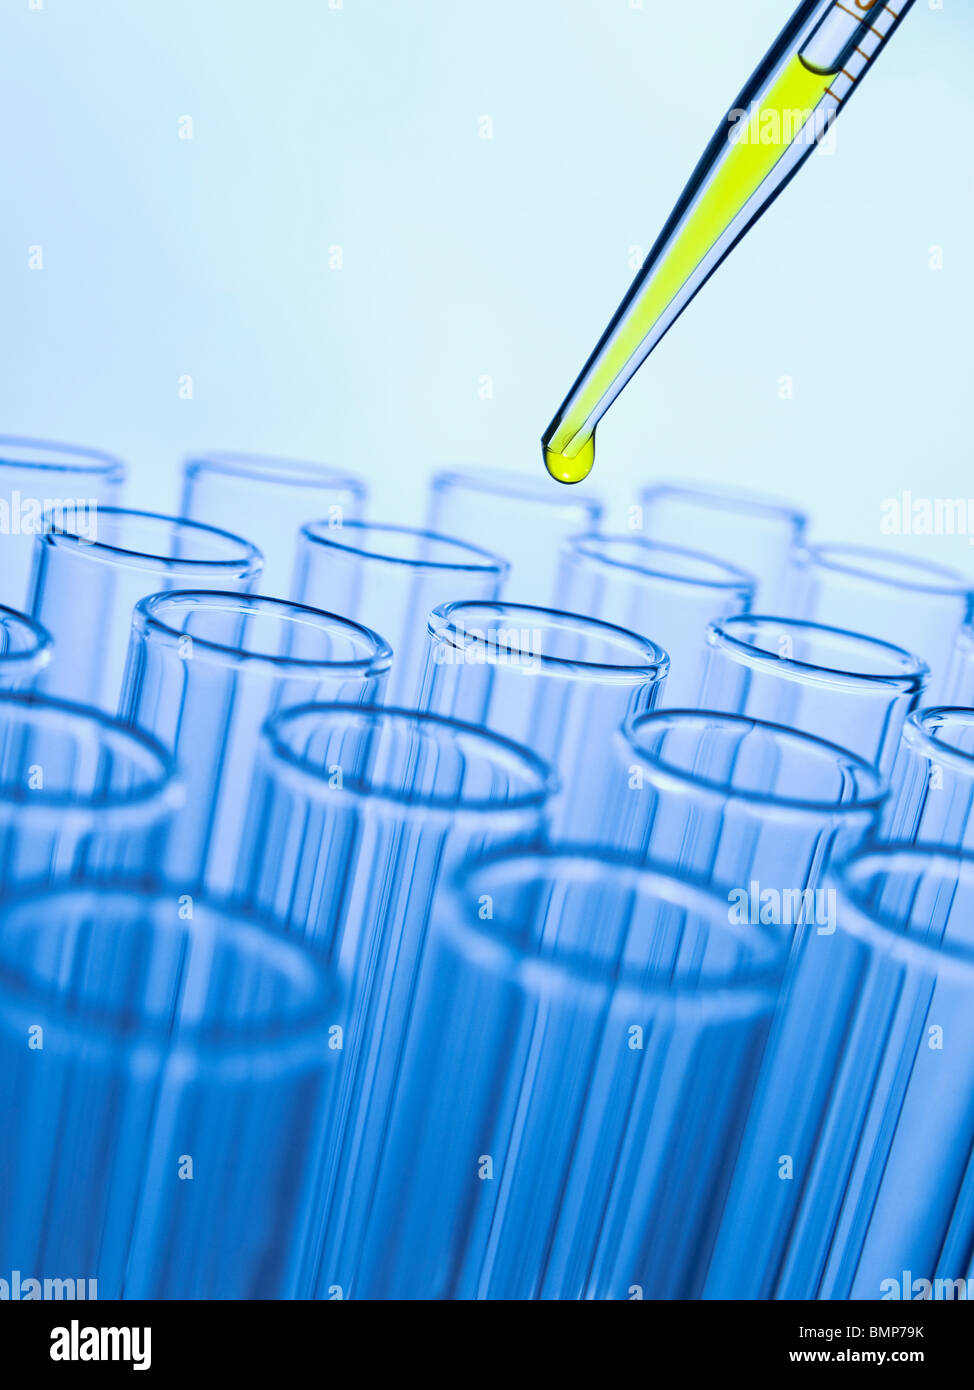 Close up of a pipette dropping a yellow sample into a test tube. - Stock Image